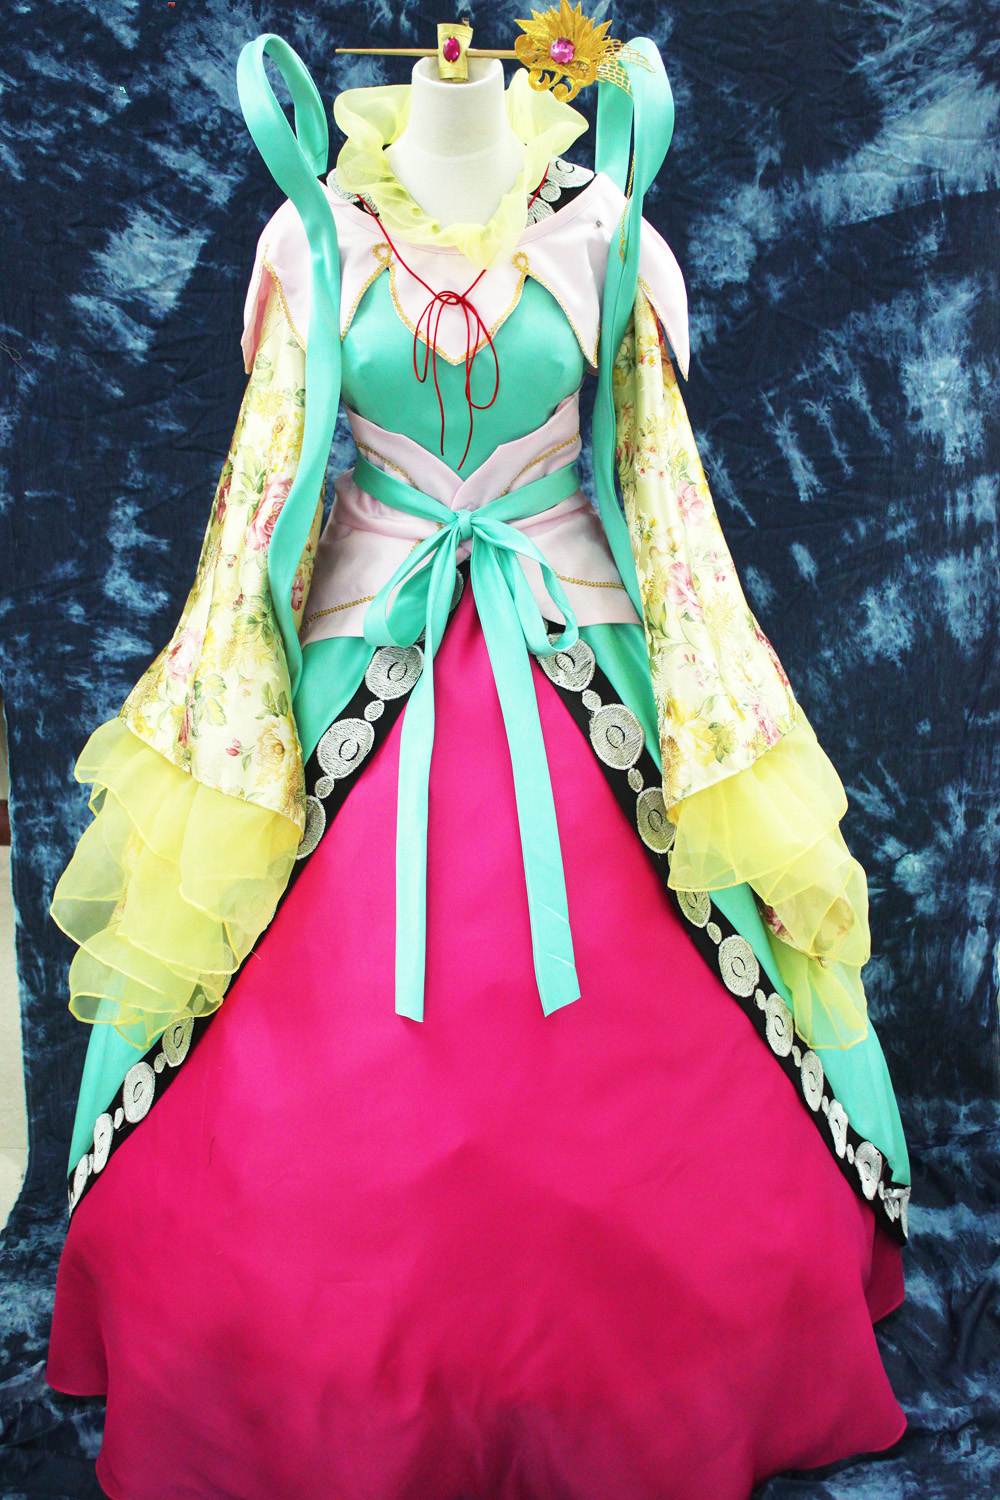 Anime Cosplay MAGI Kougyoku Ren cos Traditional Clothing Princess Cosplay CostumeОдежда и ак�е��уары<br><br><br>Aliexpress